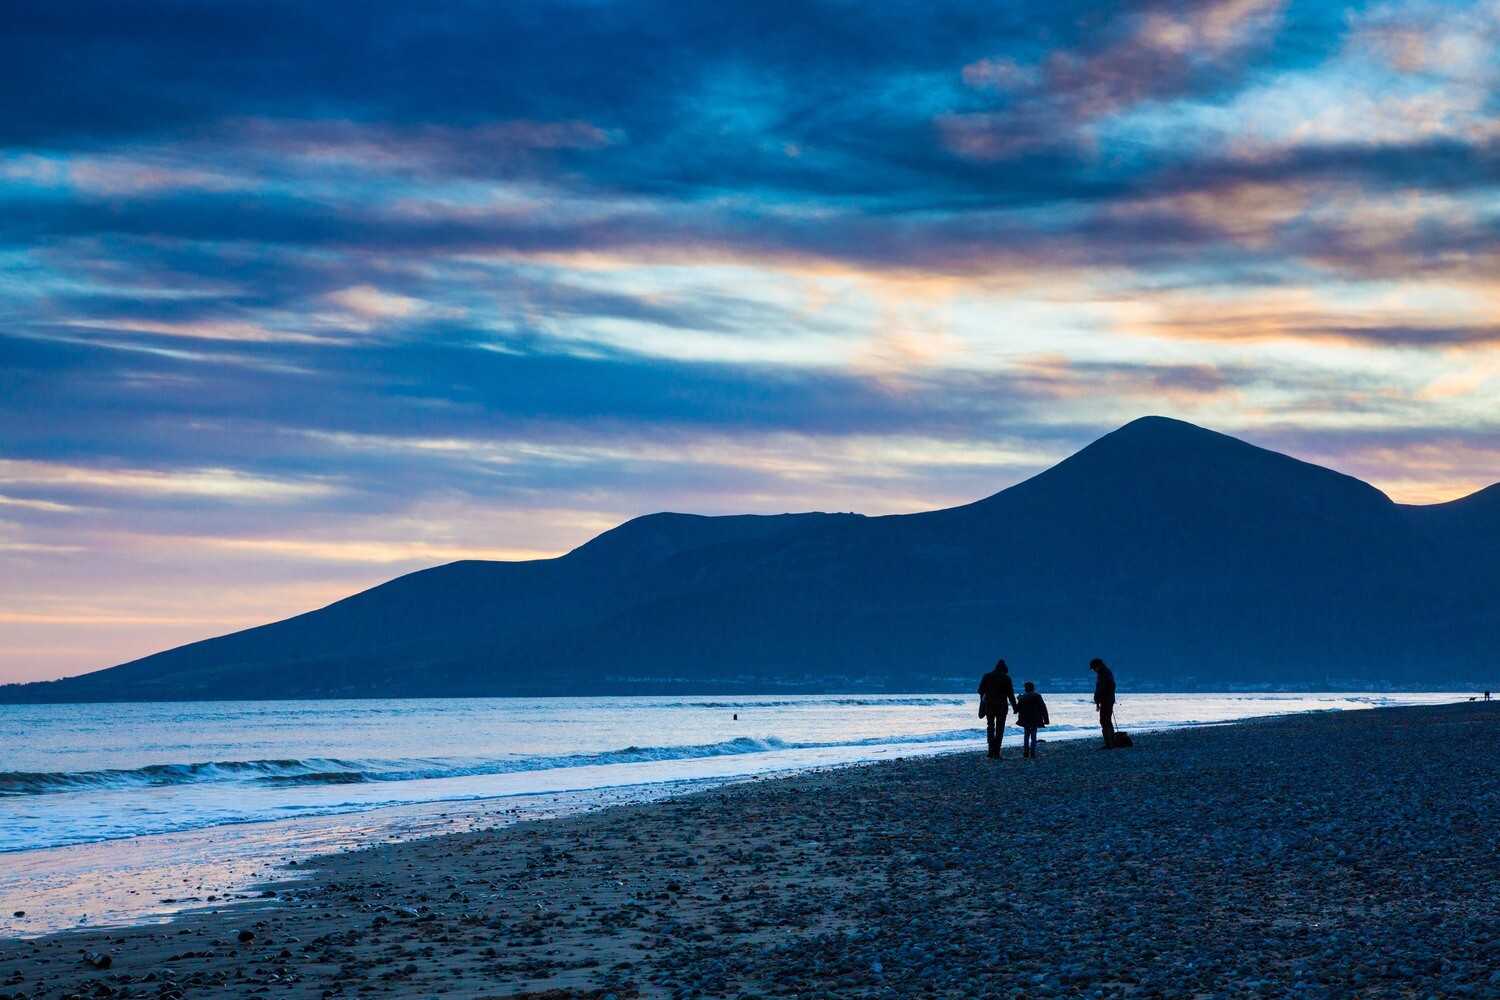 Keel Point at Sunset, County Down, N.Ireland printed